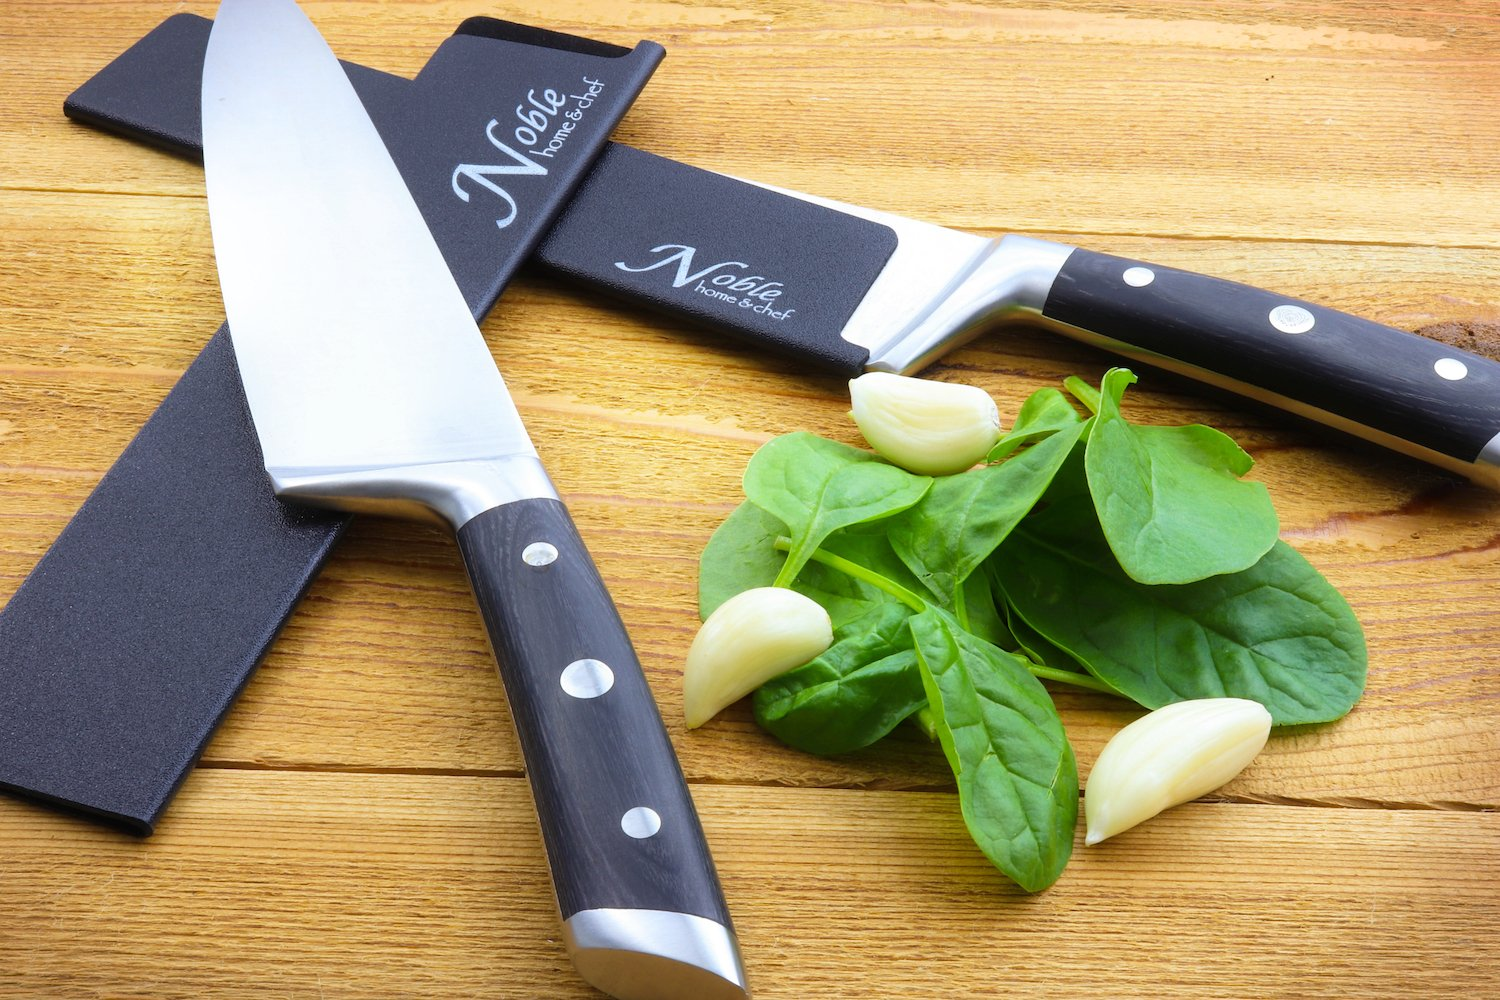 """2-Piece Universal Knife Edge Guards (8.5"""" and 10.5'') are More Durable, BPA-Free, Gentle on Your Blades, and Long-Lasting. Noble Home & Chef Knife Covers Are Non-Toxic and Abrasion Resistant! (Knives N by Noble Home & Chef (Image #3)"""